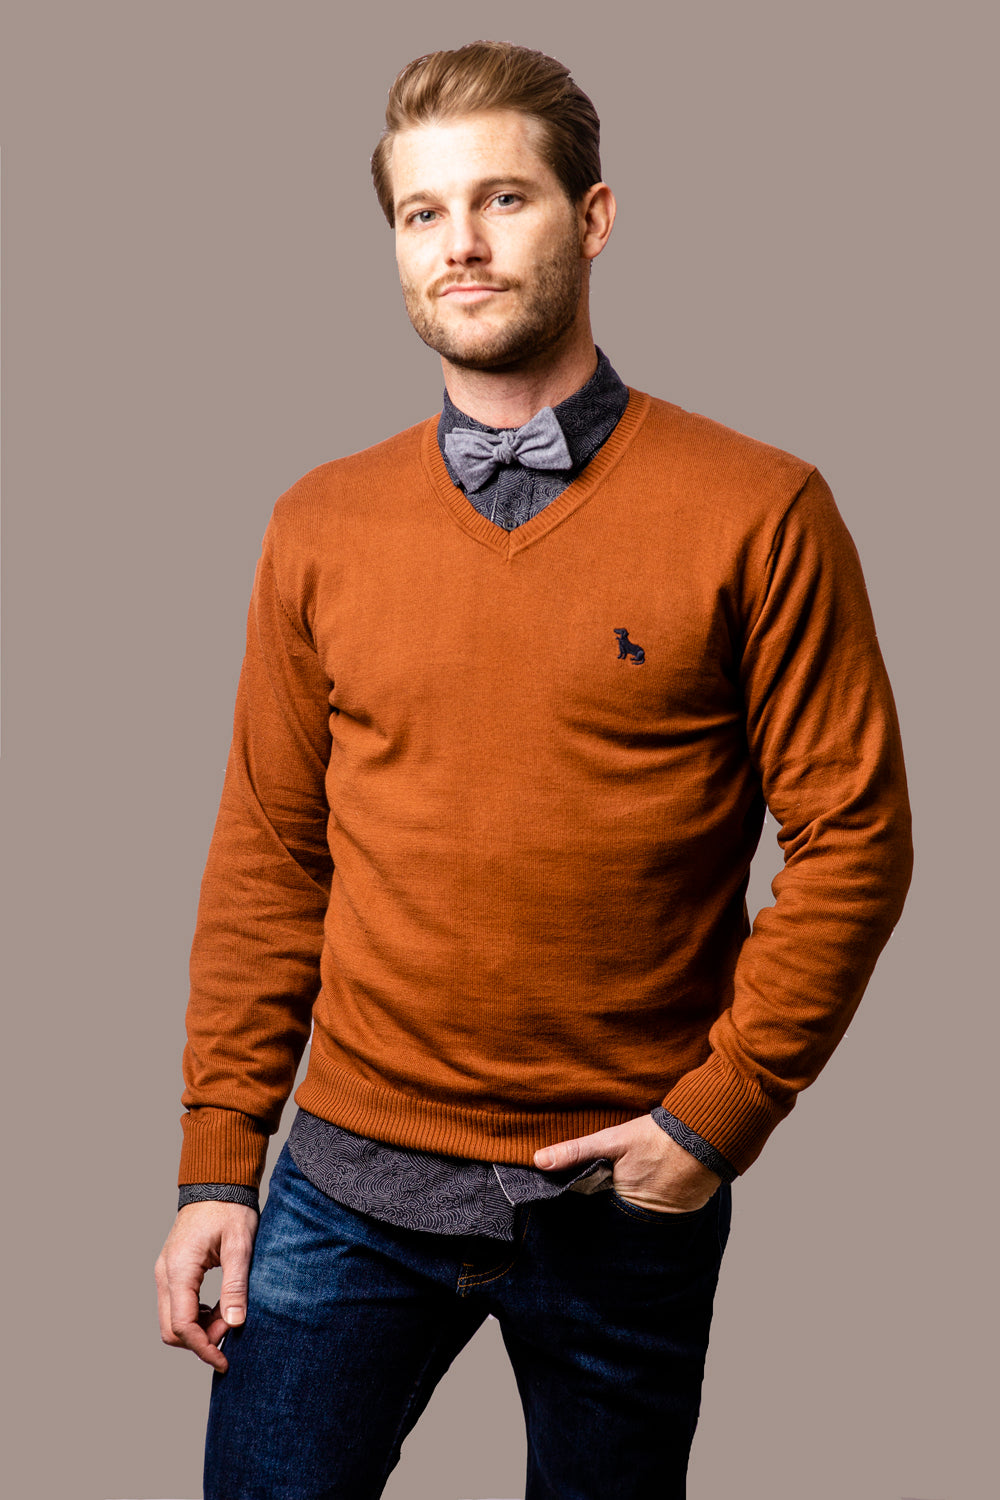 Copper Cotton V-Neck Sweater  Size L & XL Available